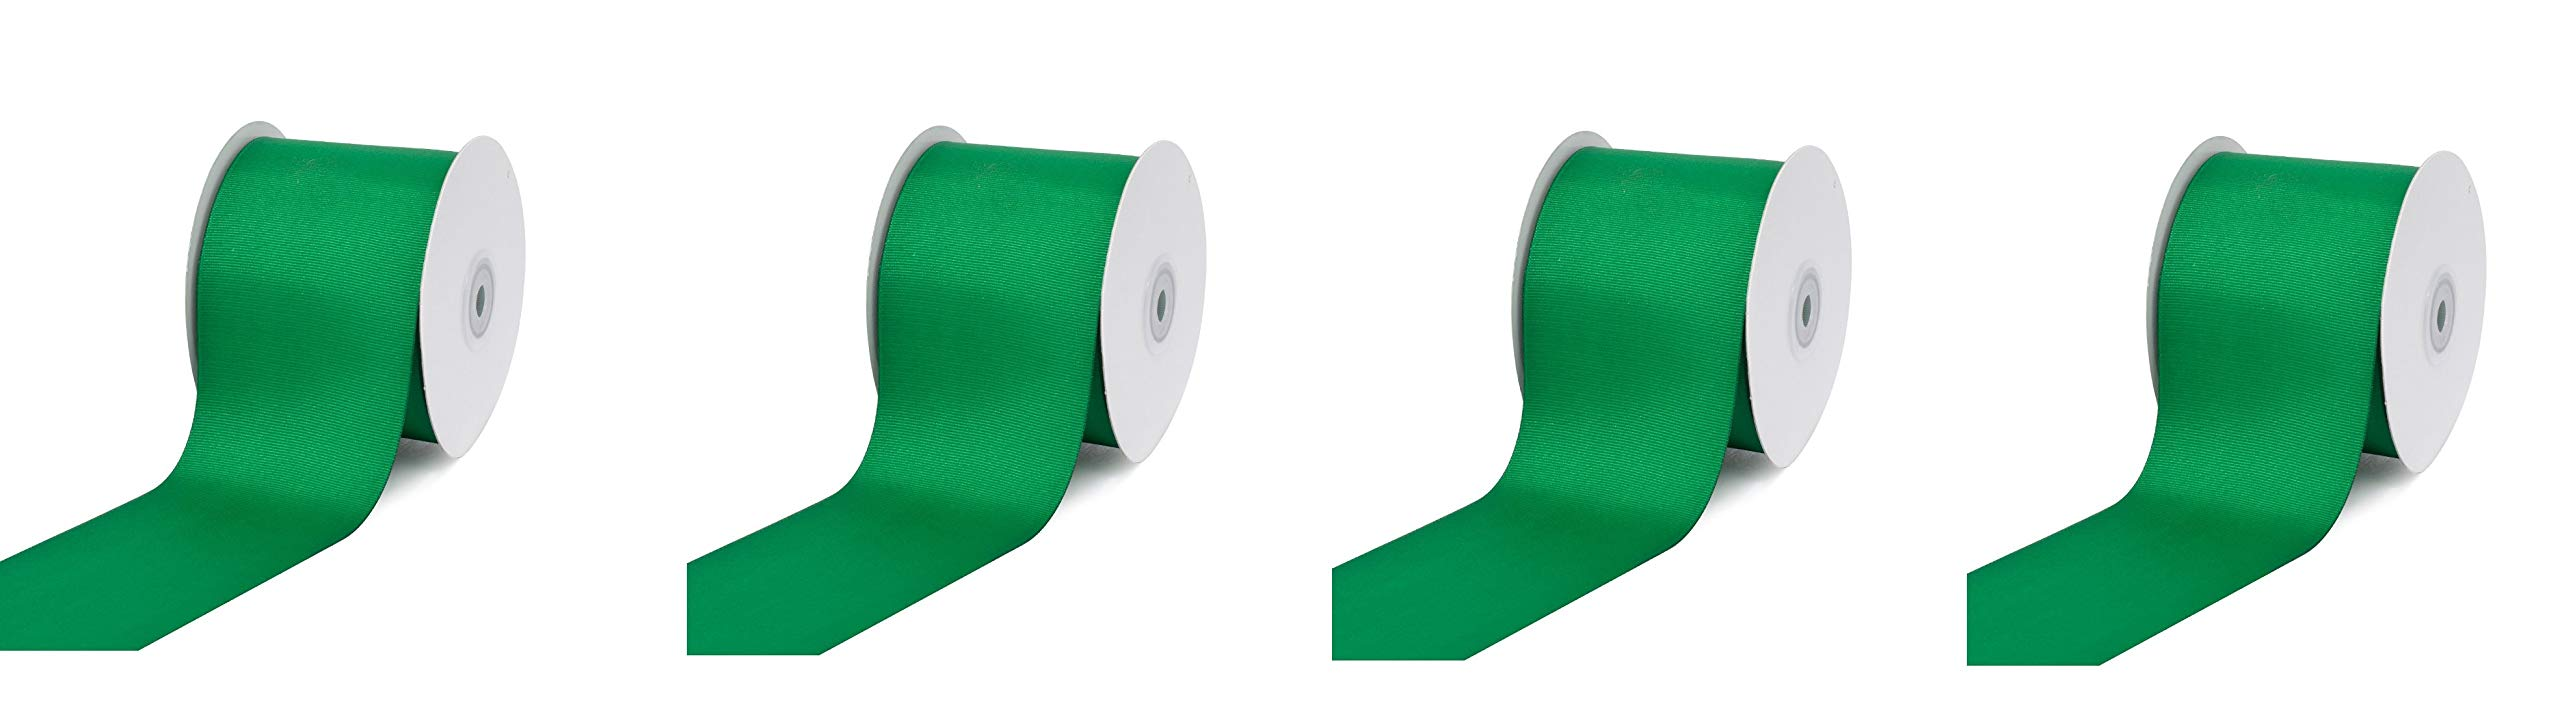 Creative Ideas 3'' Inch Solid Grosgrain Ribbon, 25 Yards, Emerald Green, 25 yd (4-Pack) by Creative Ideas (Image #1)